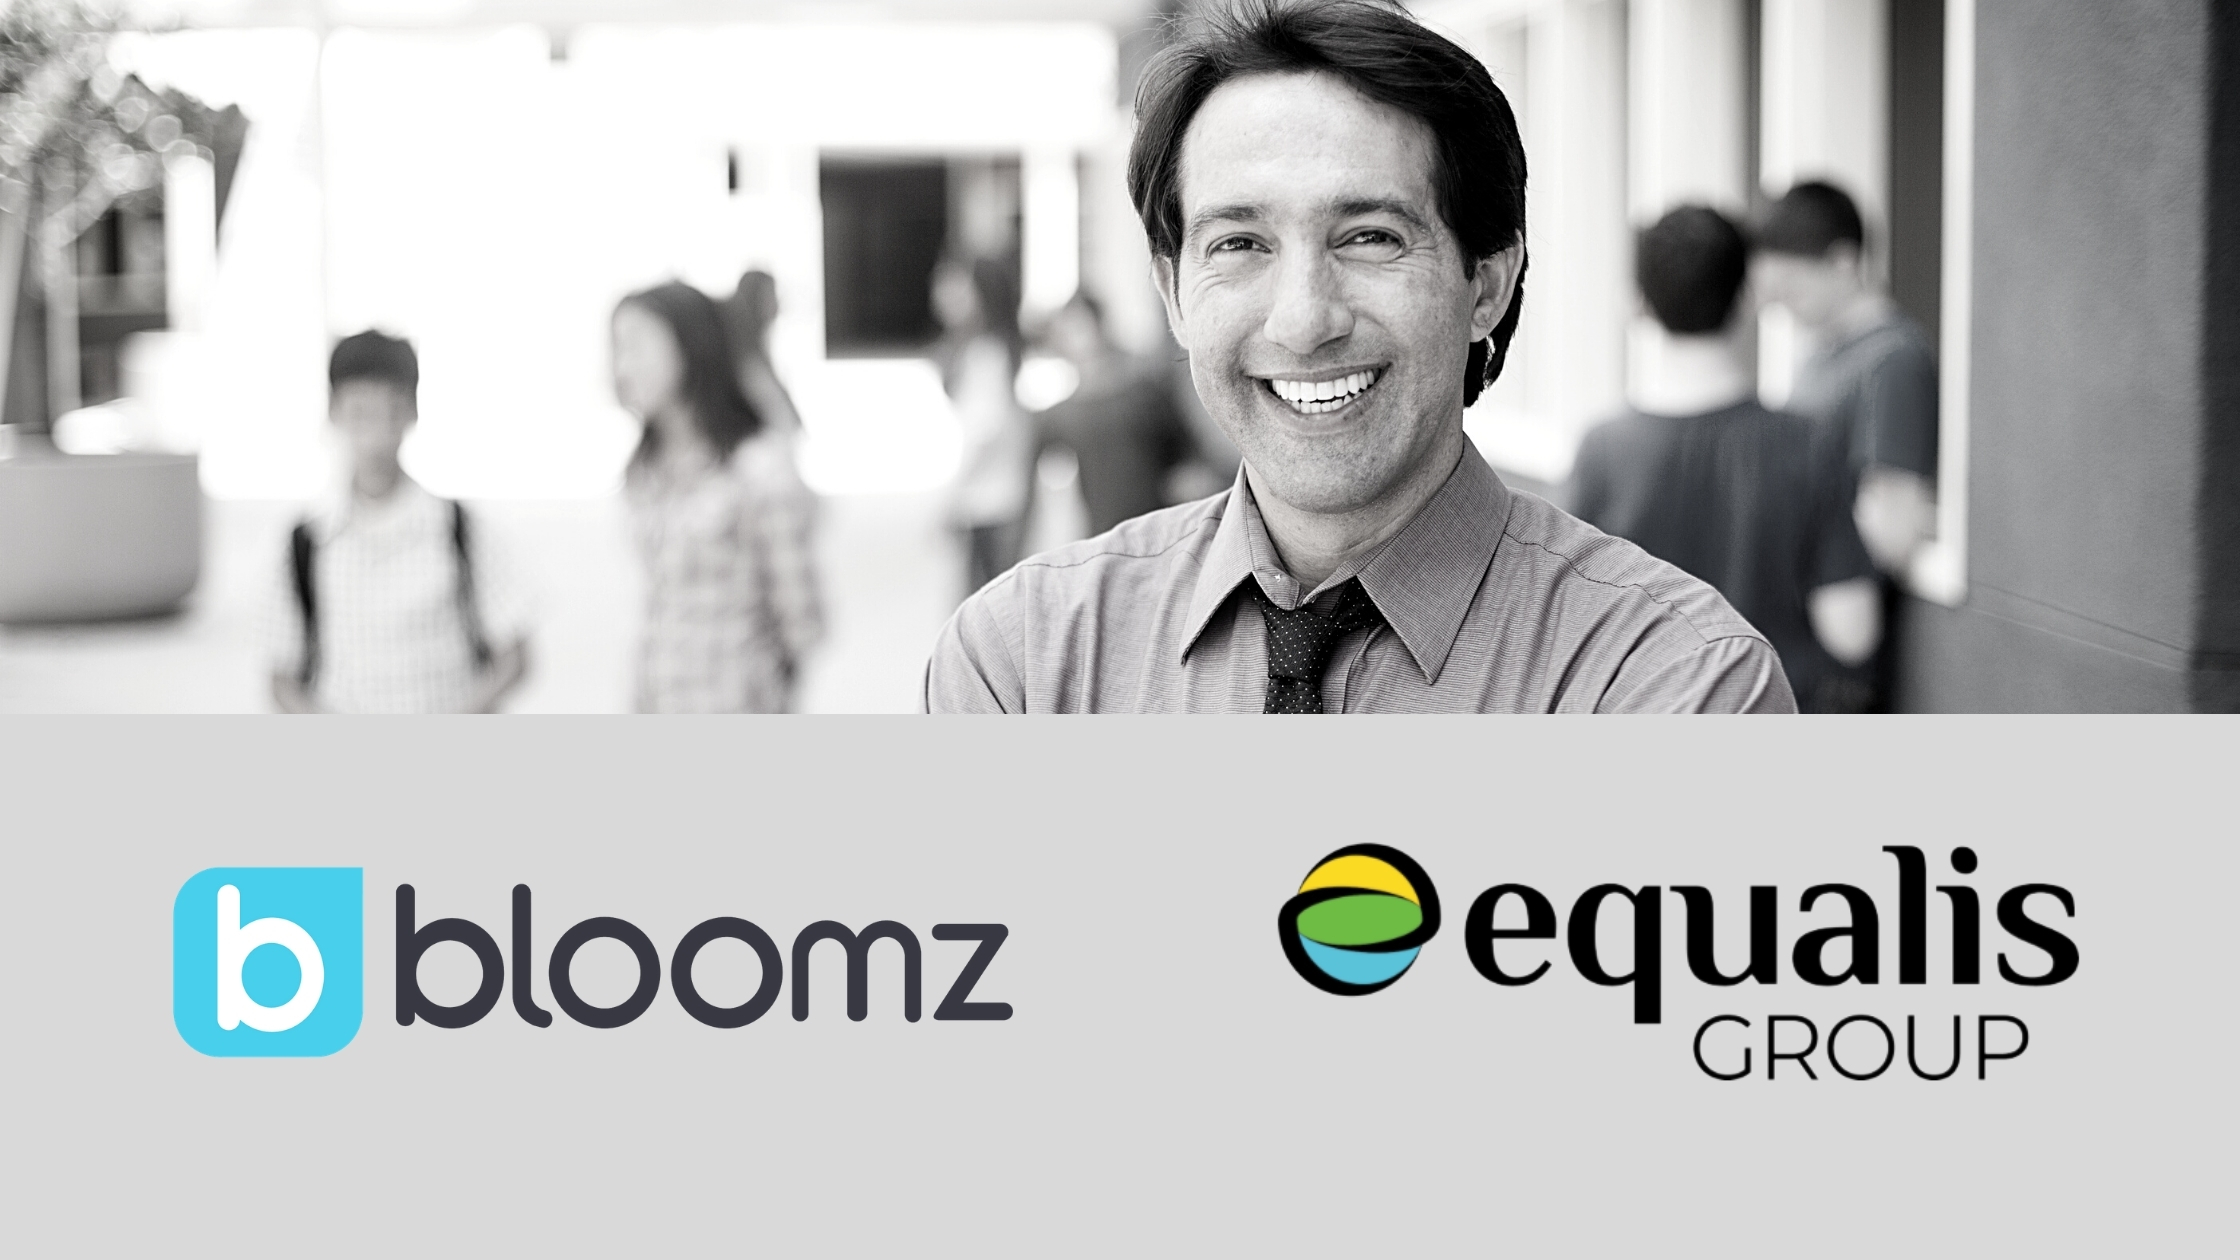 Skip the RFP and Get your Whole School on Bloomz. Here's How...